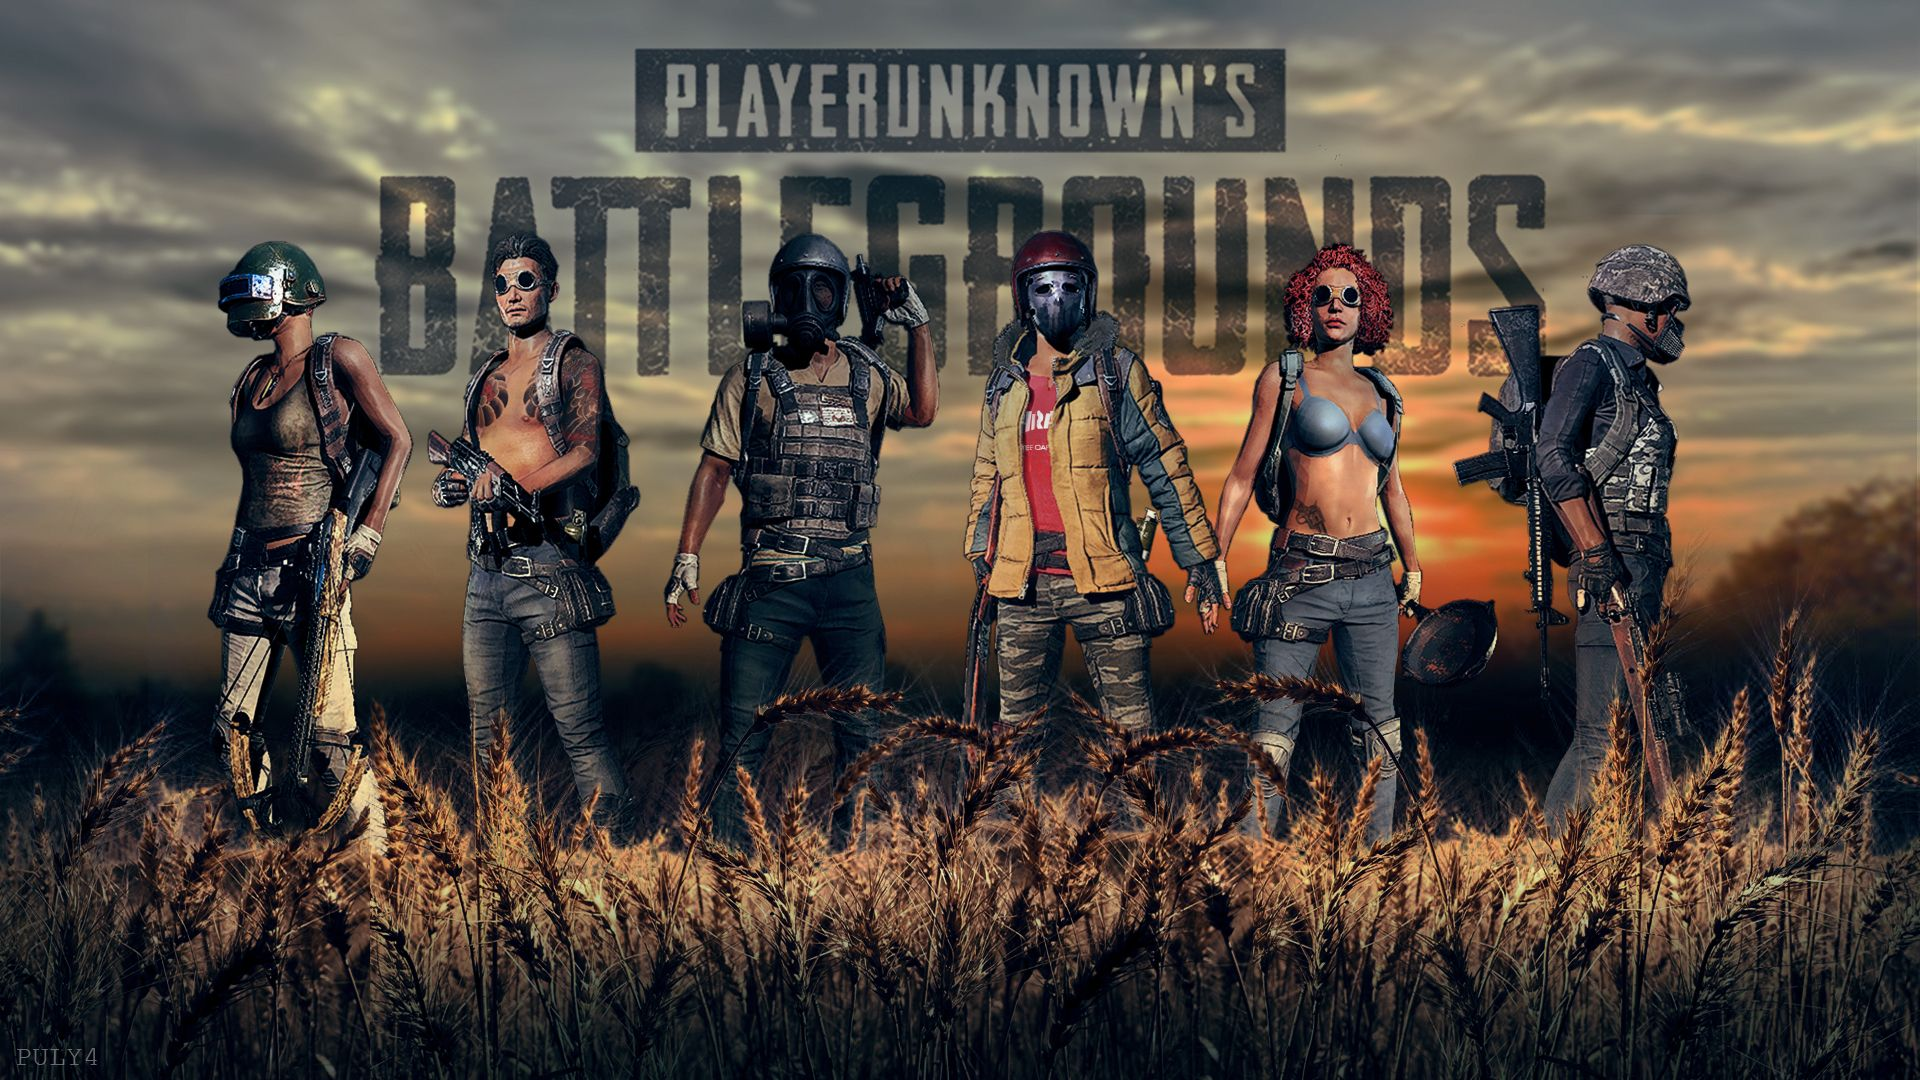 Pubg Wallpapers High Quality Resolution On Wallpaper 1080p Hd